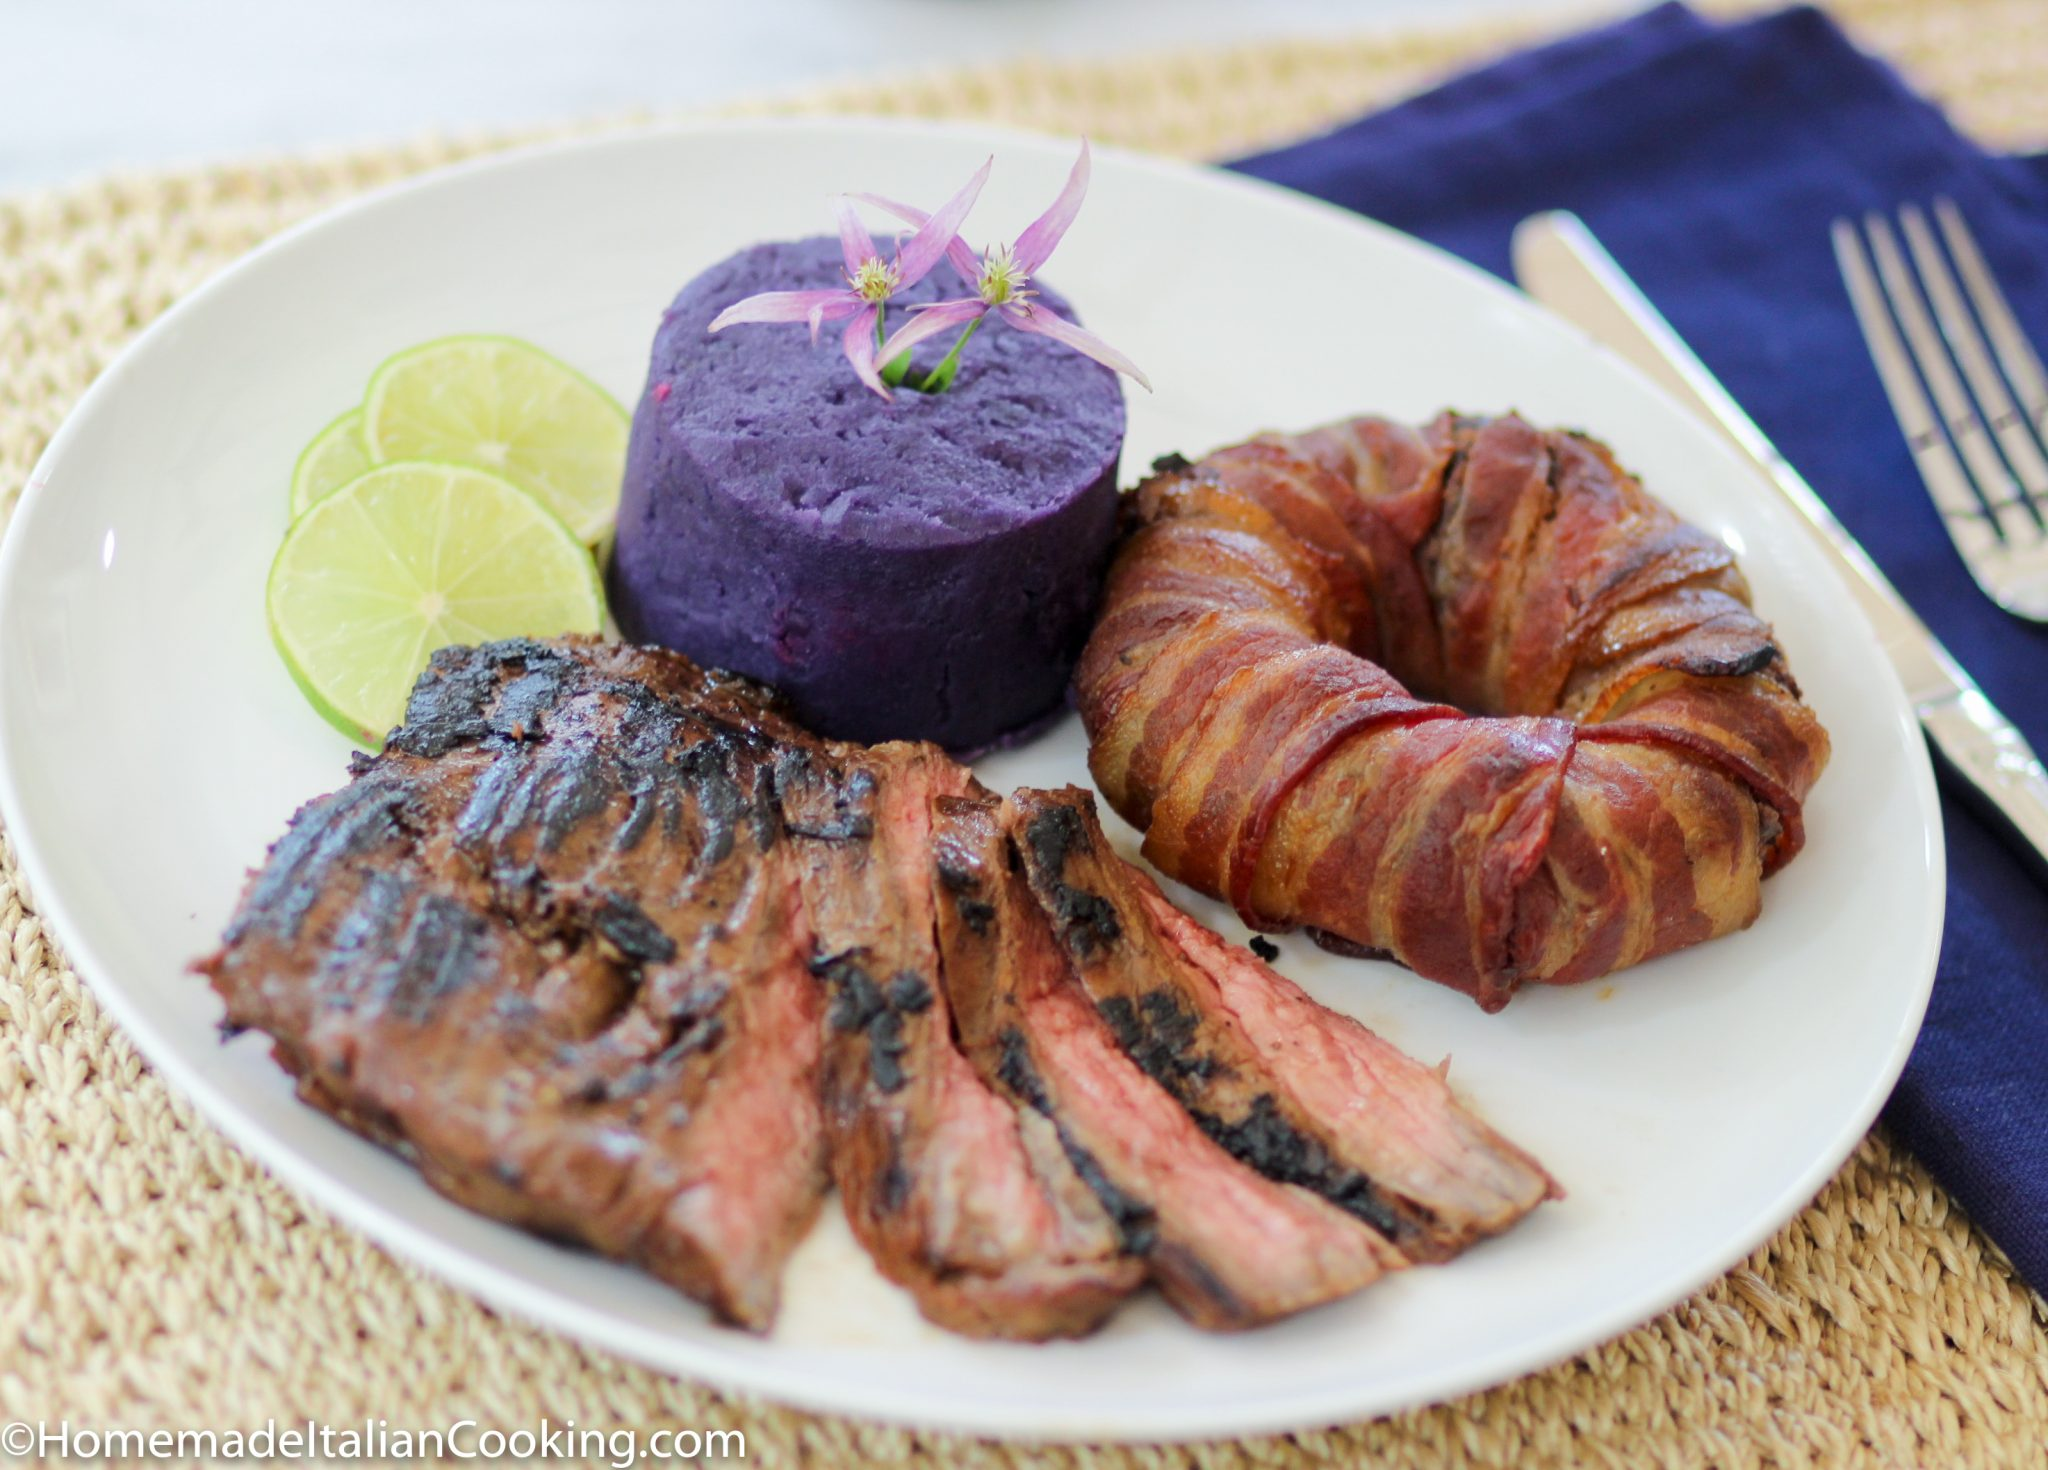 Submitted plate steak yams beans vanilla